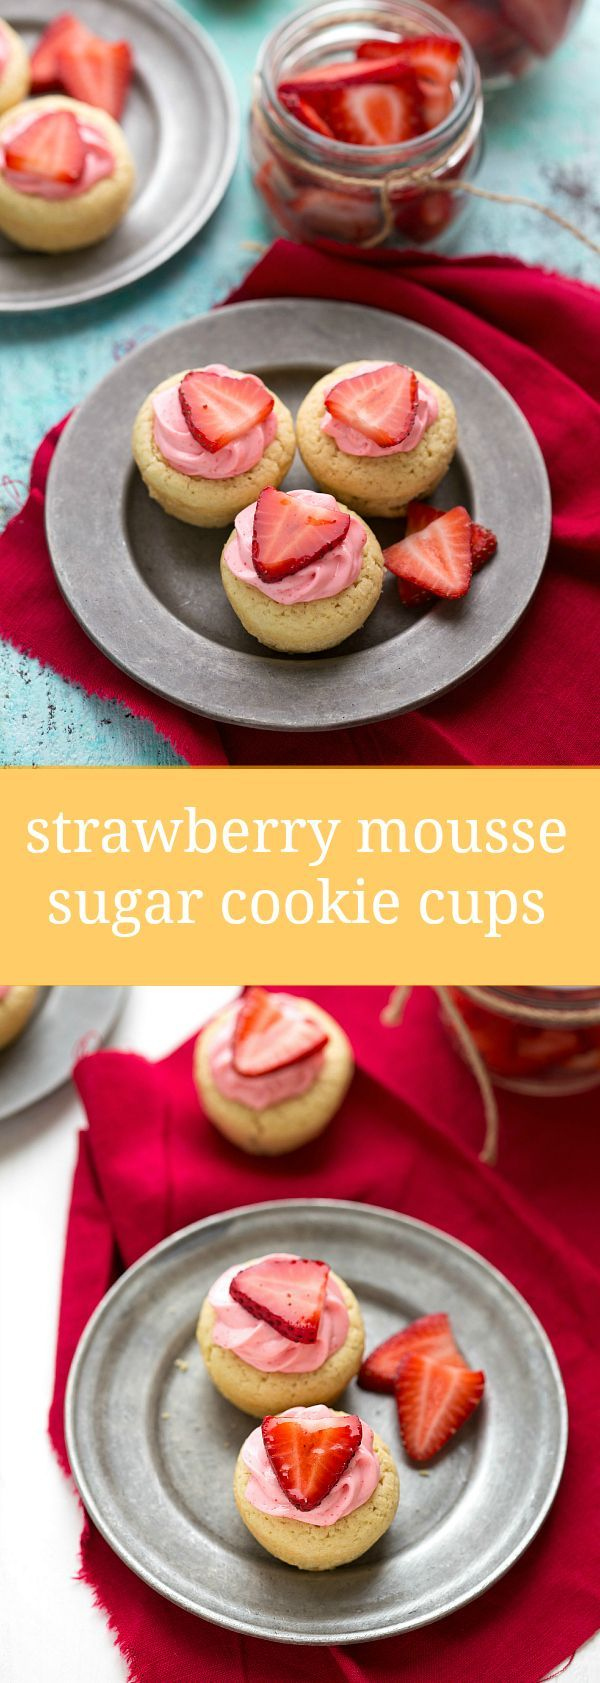 Easy Strawberry Mousse Sugar Cookie Cups